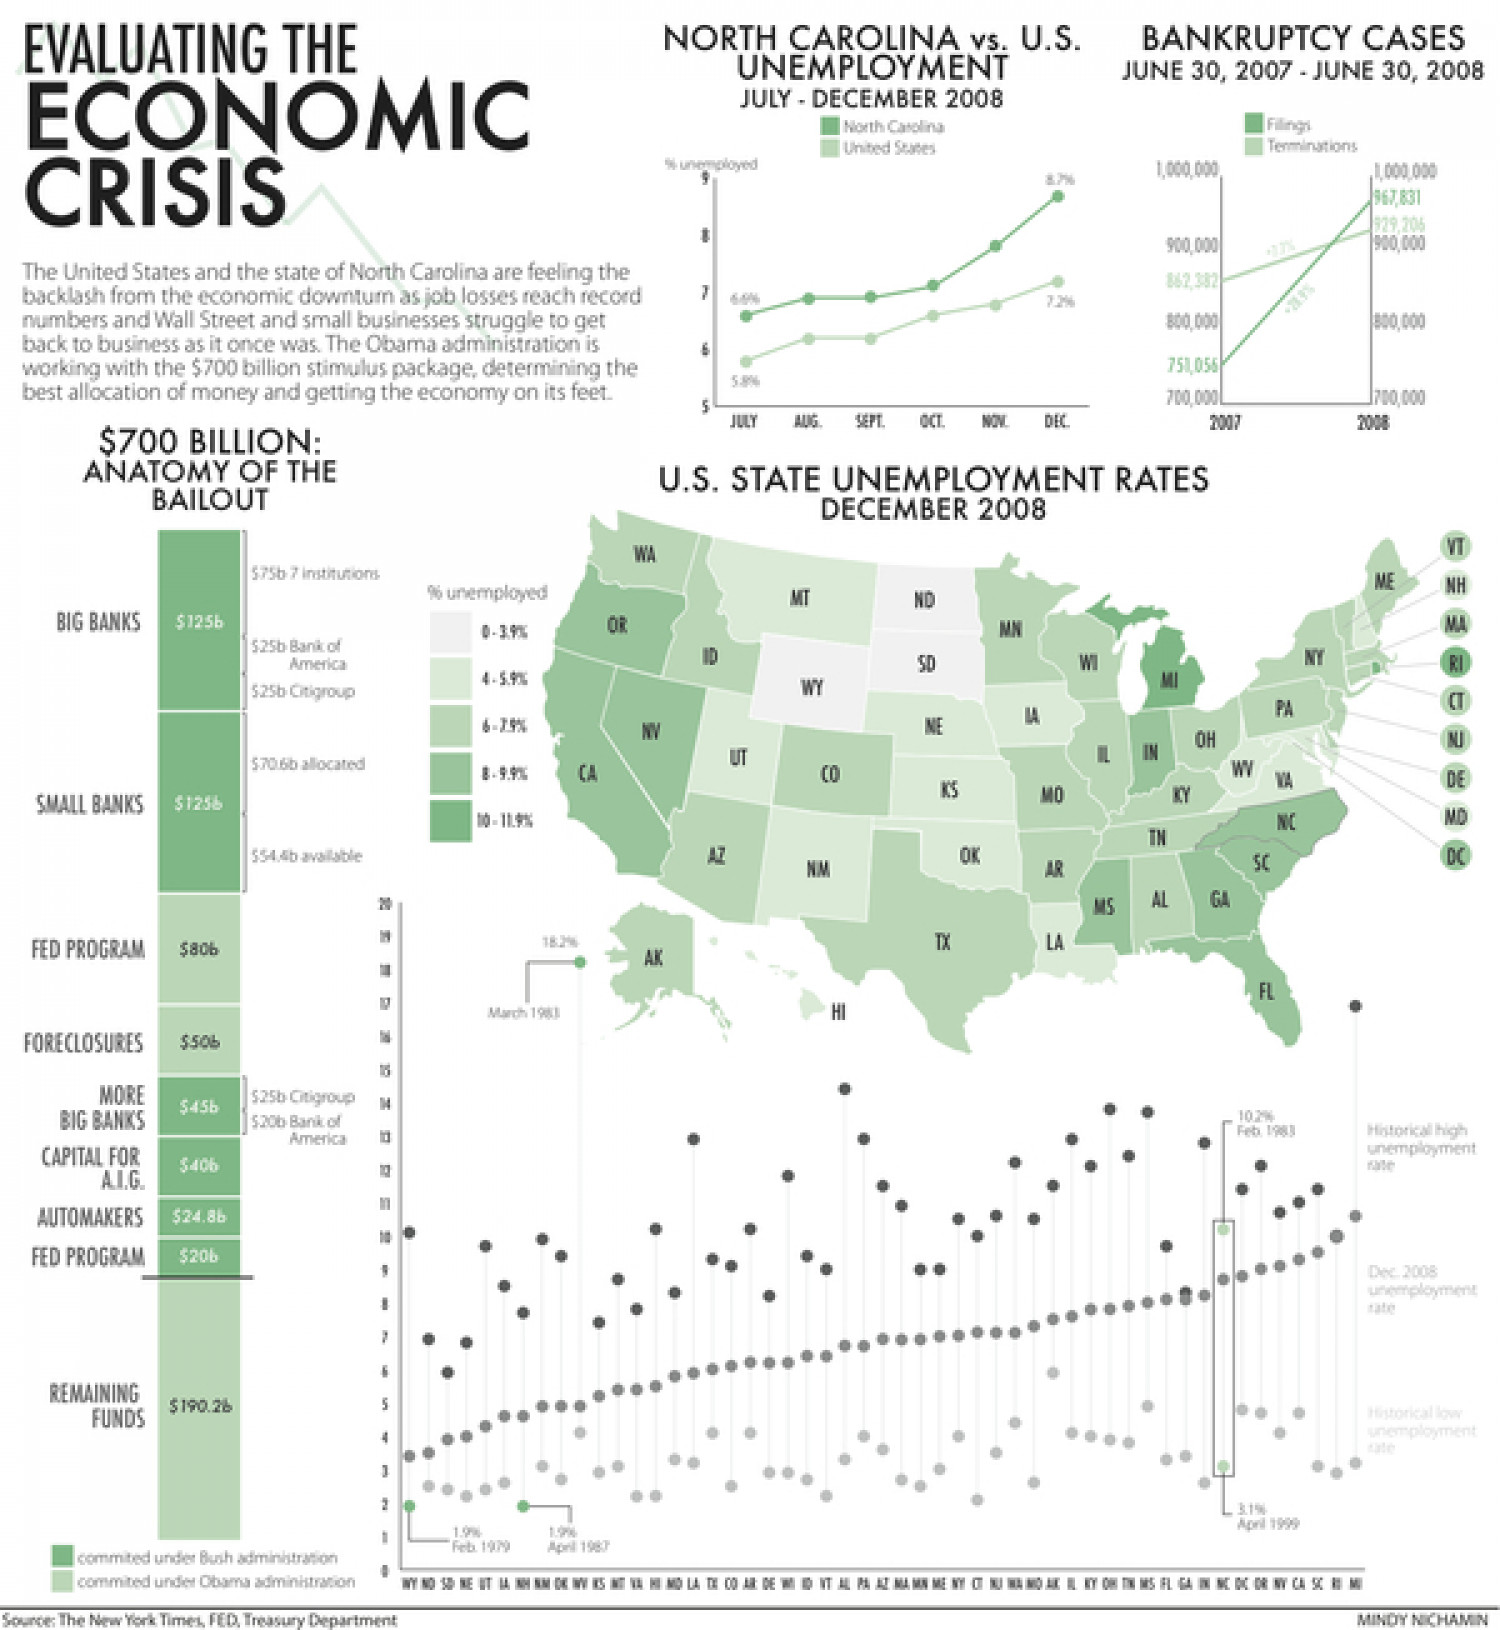 Evaluating the Economic Crisis Infographic